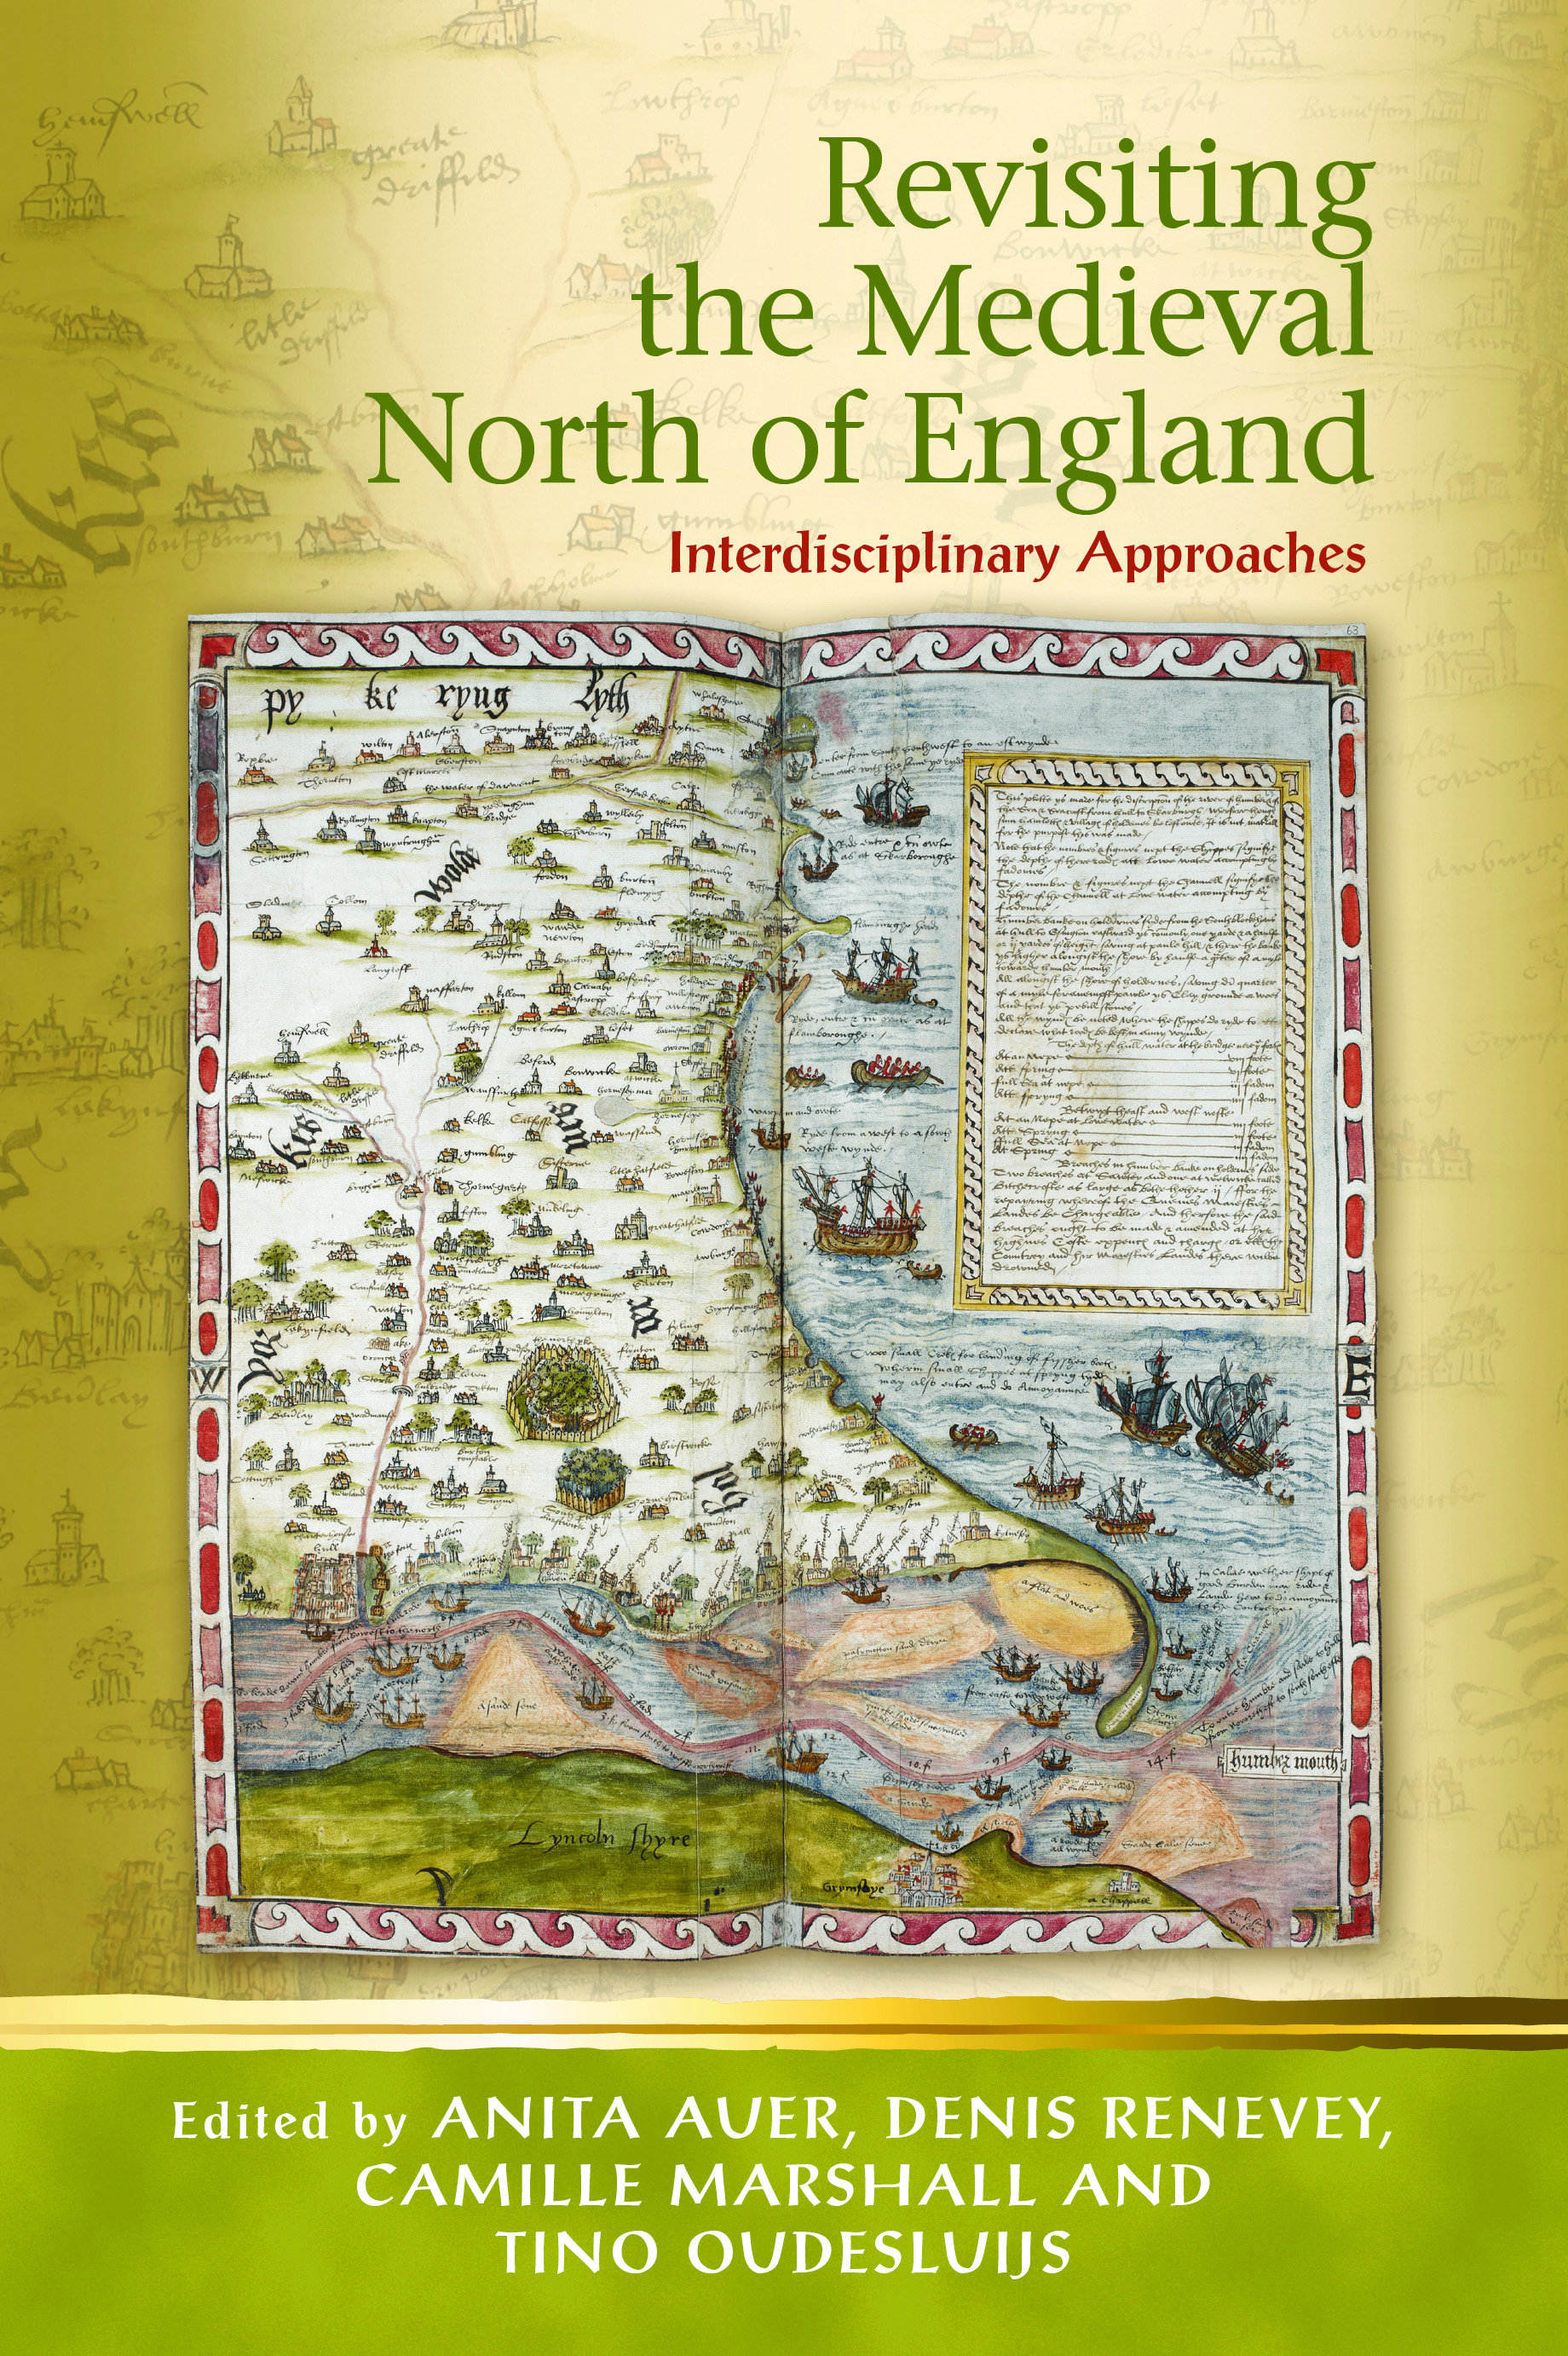 A. Auer, D. Renevey, C. Marshal, T. Oudesluijs (dir.), Revisiting the Medieval North of England. Interdisciplinary Approaches